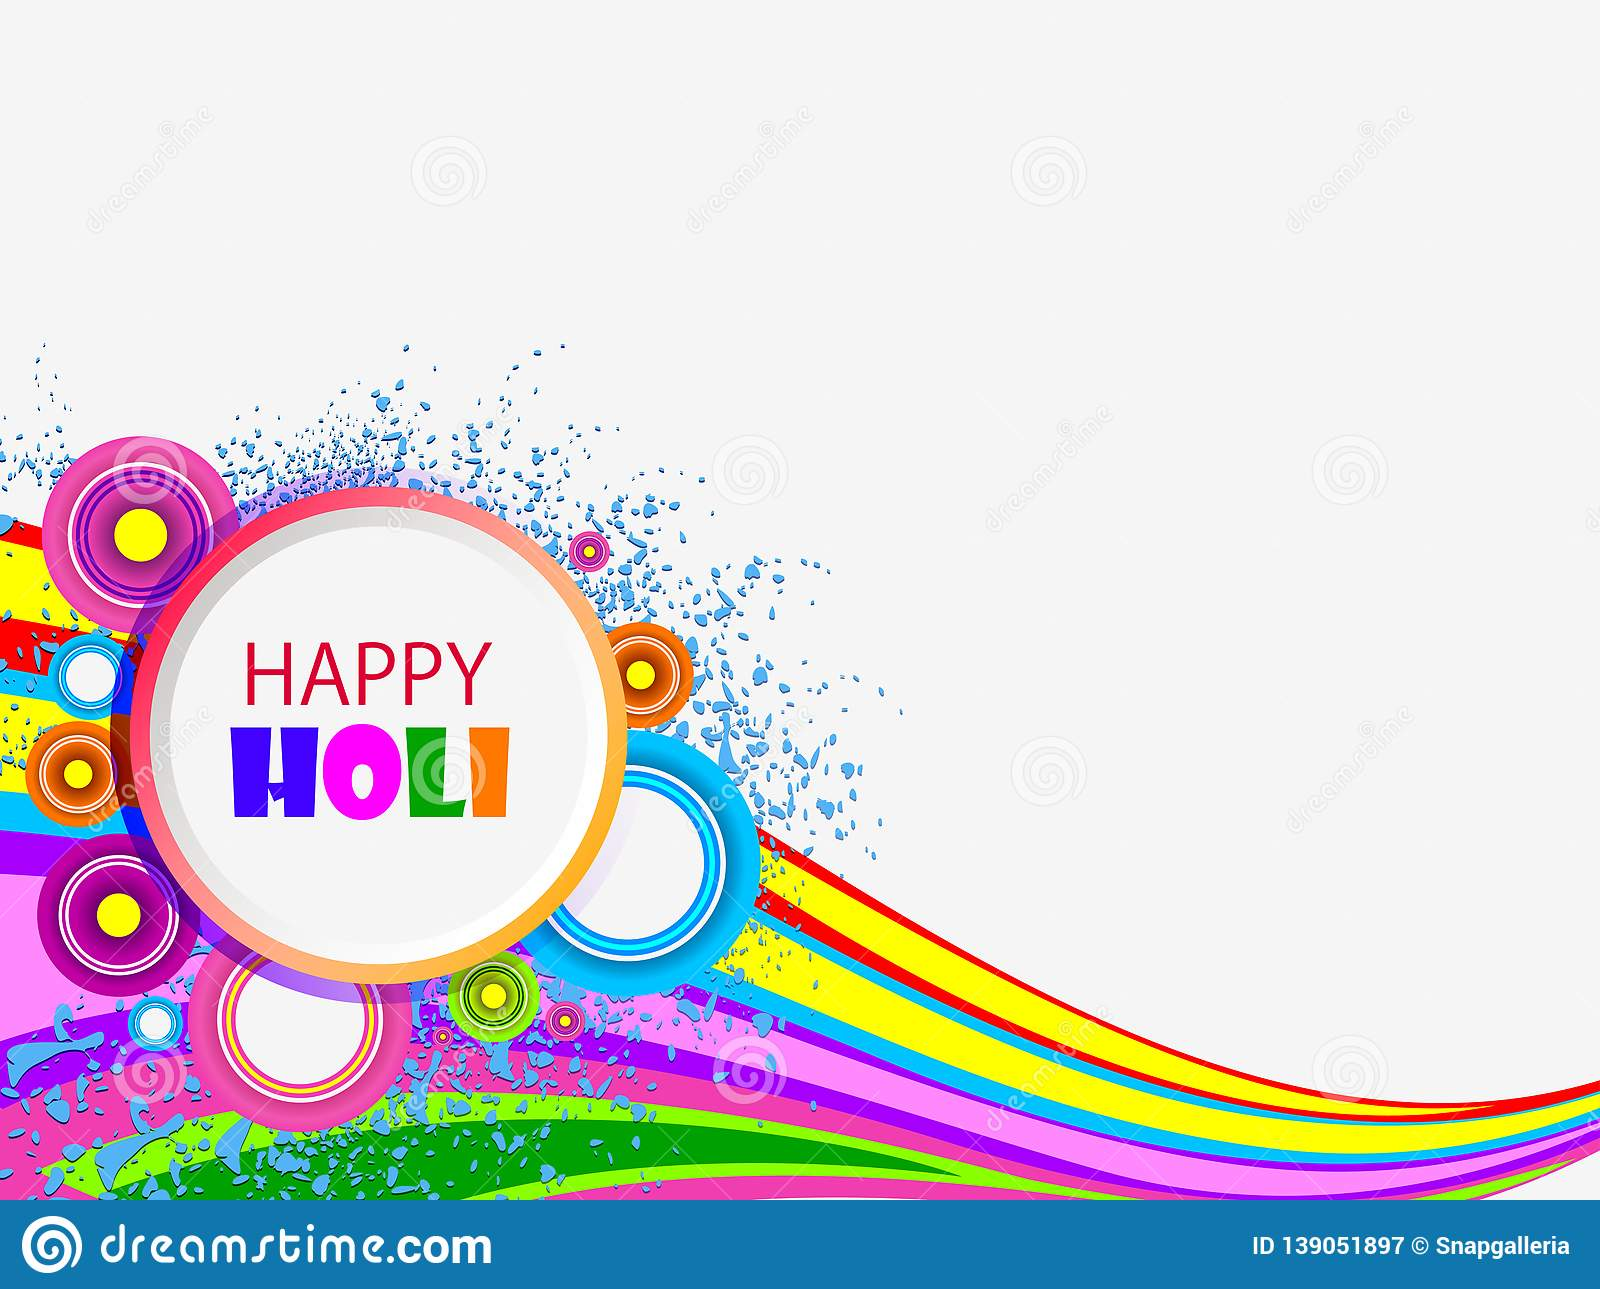 Vector Illustration Of Colorful Splash For Holi Background